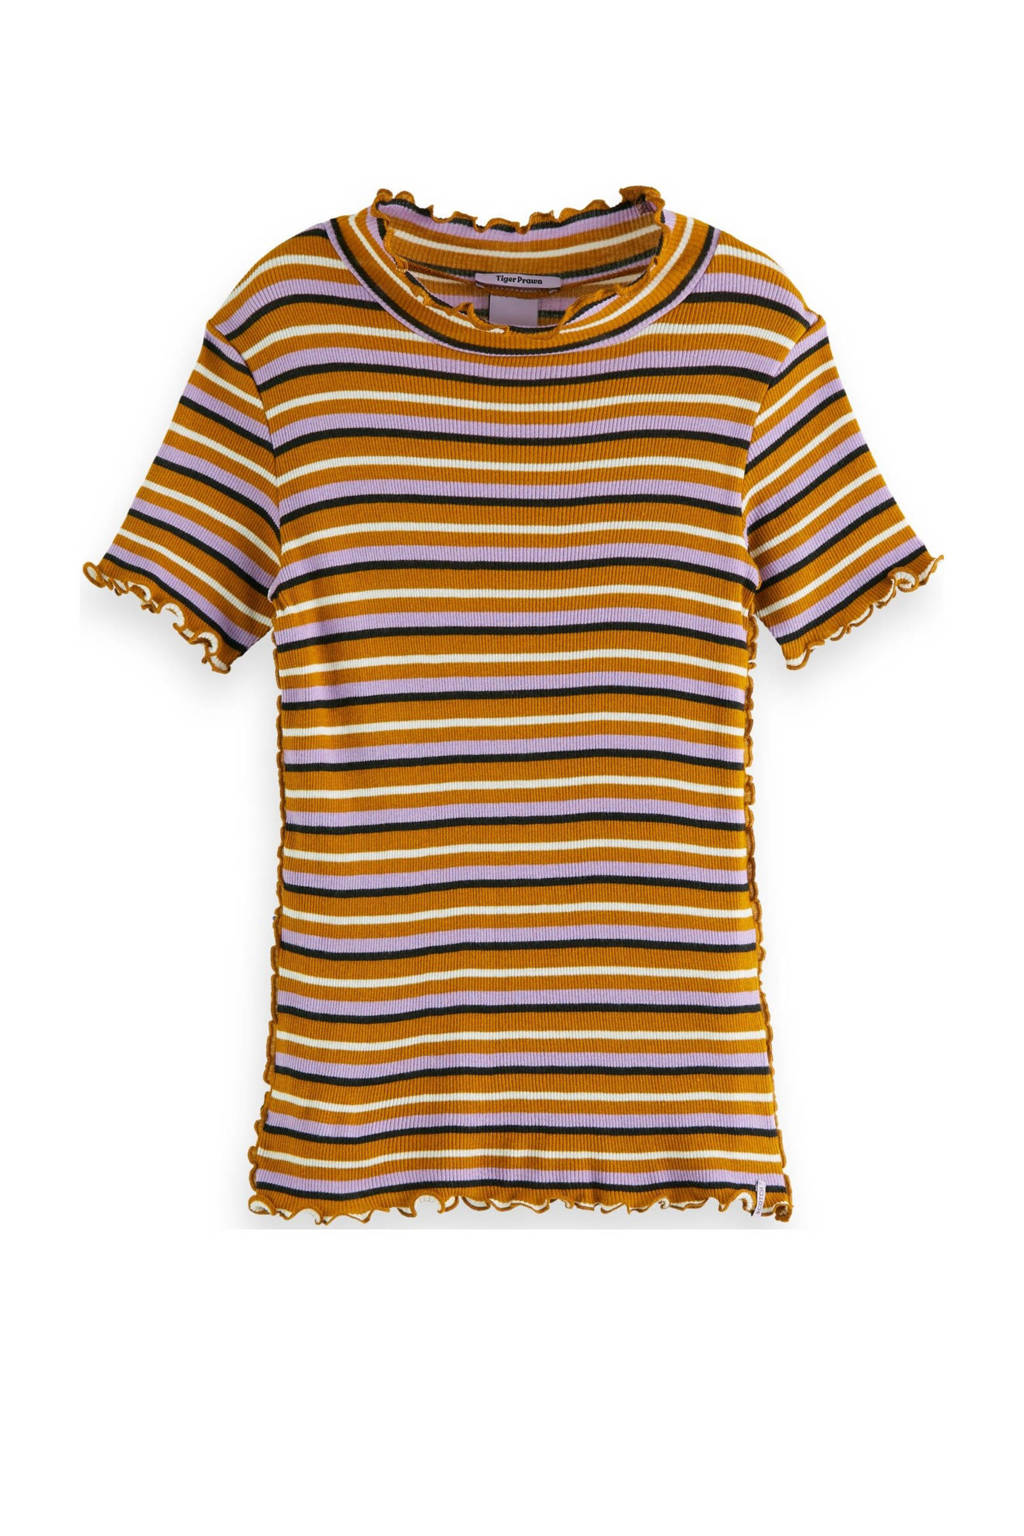 Scotch & Soda gestreept T-shirt multicolor, Multicolor